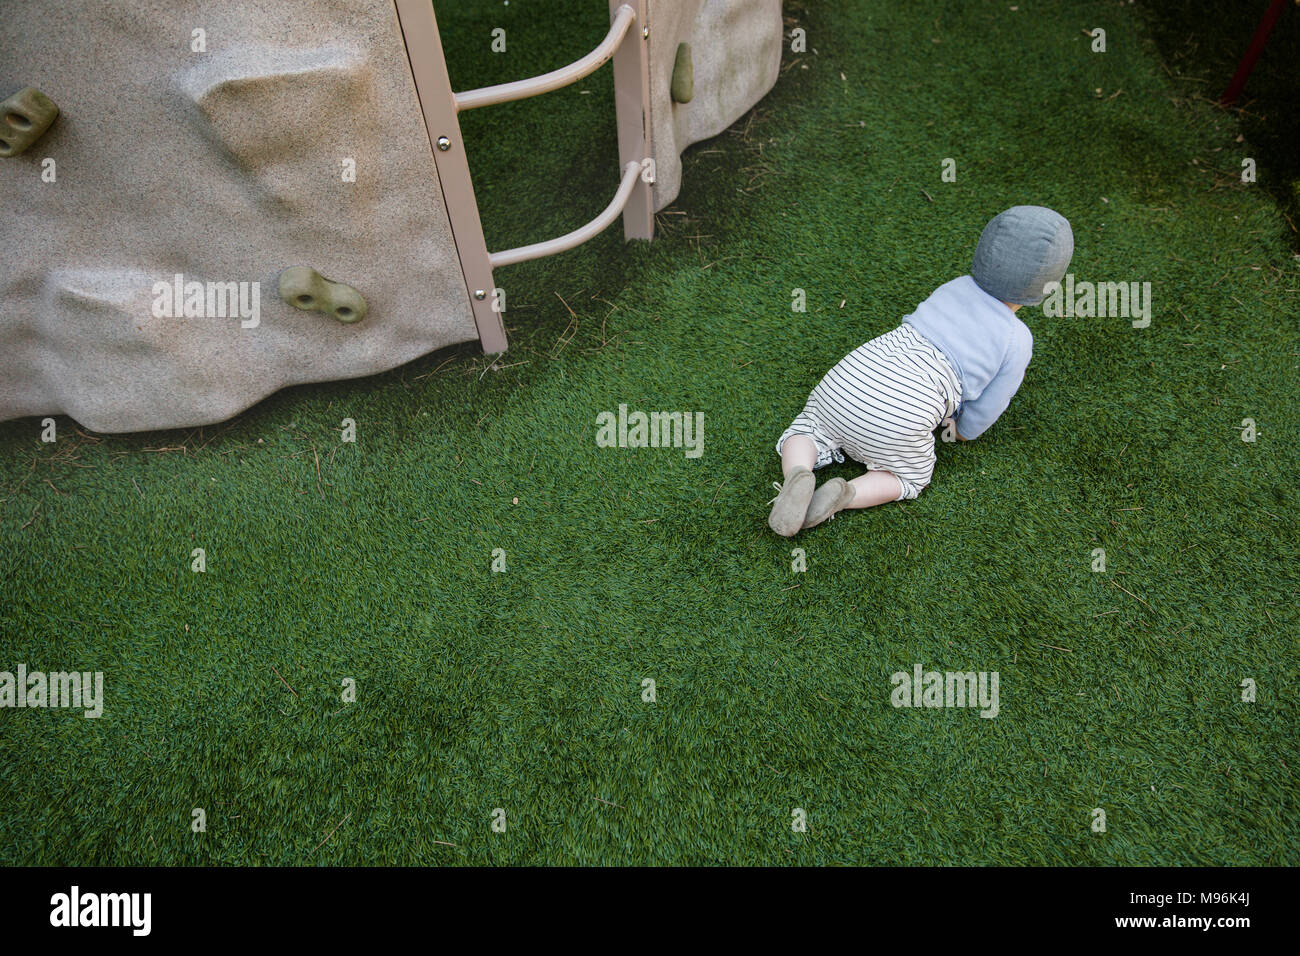 Baby crawling on grass - Stock Image